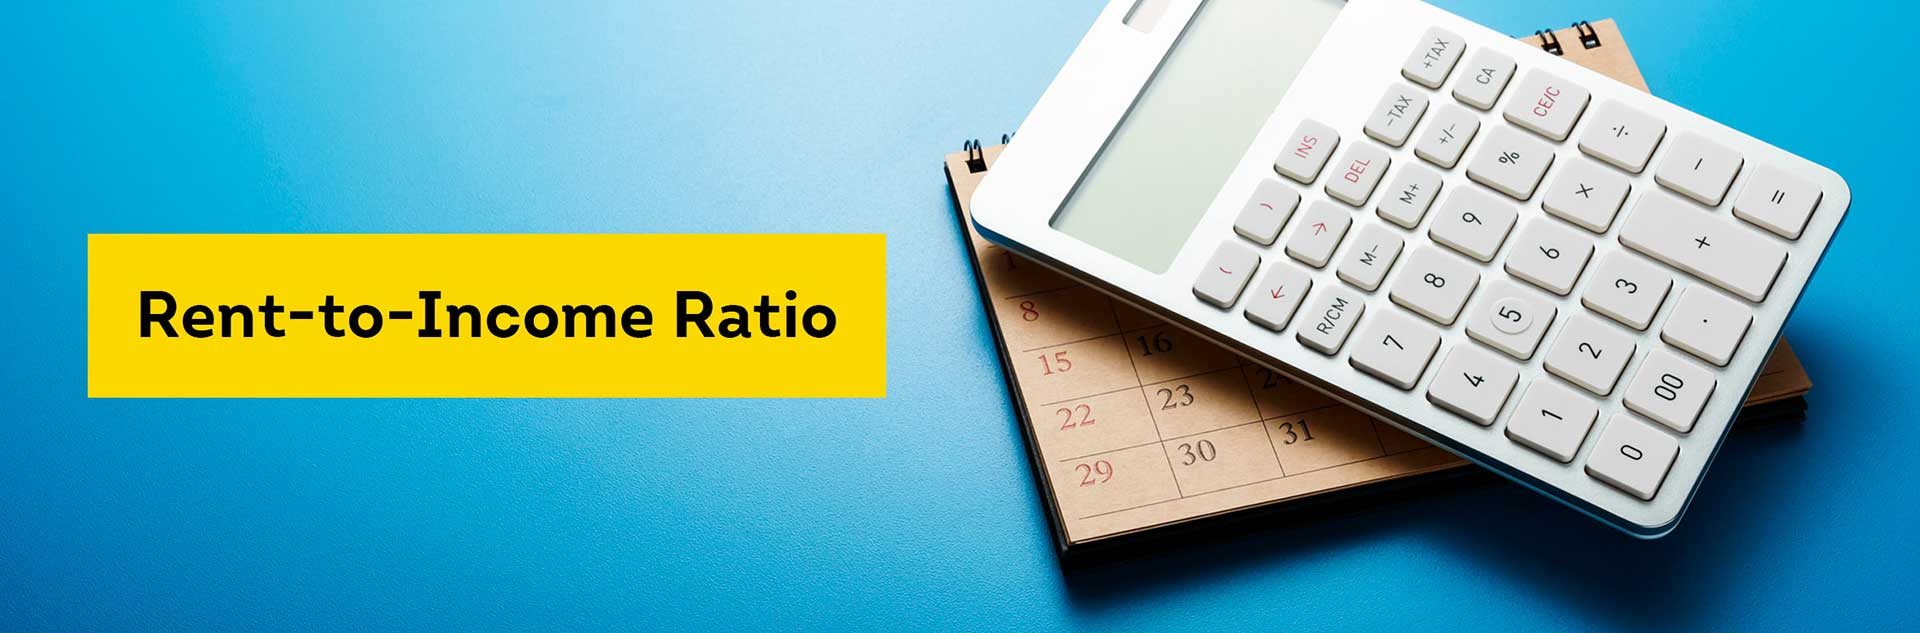 rent to income ratio calculation